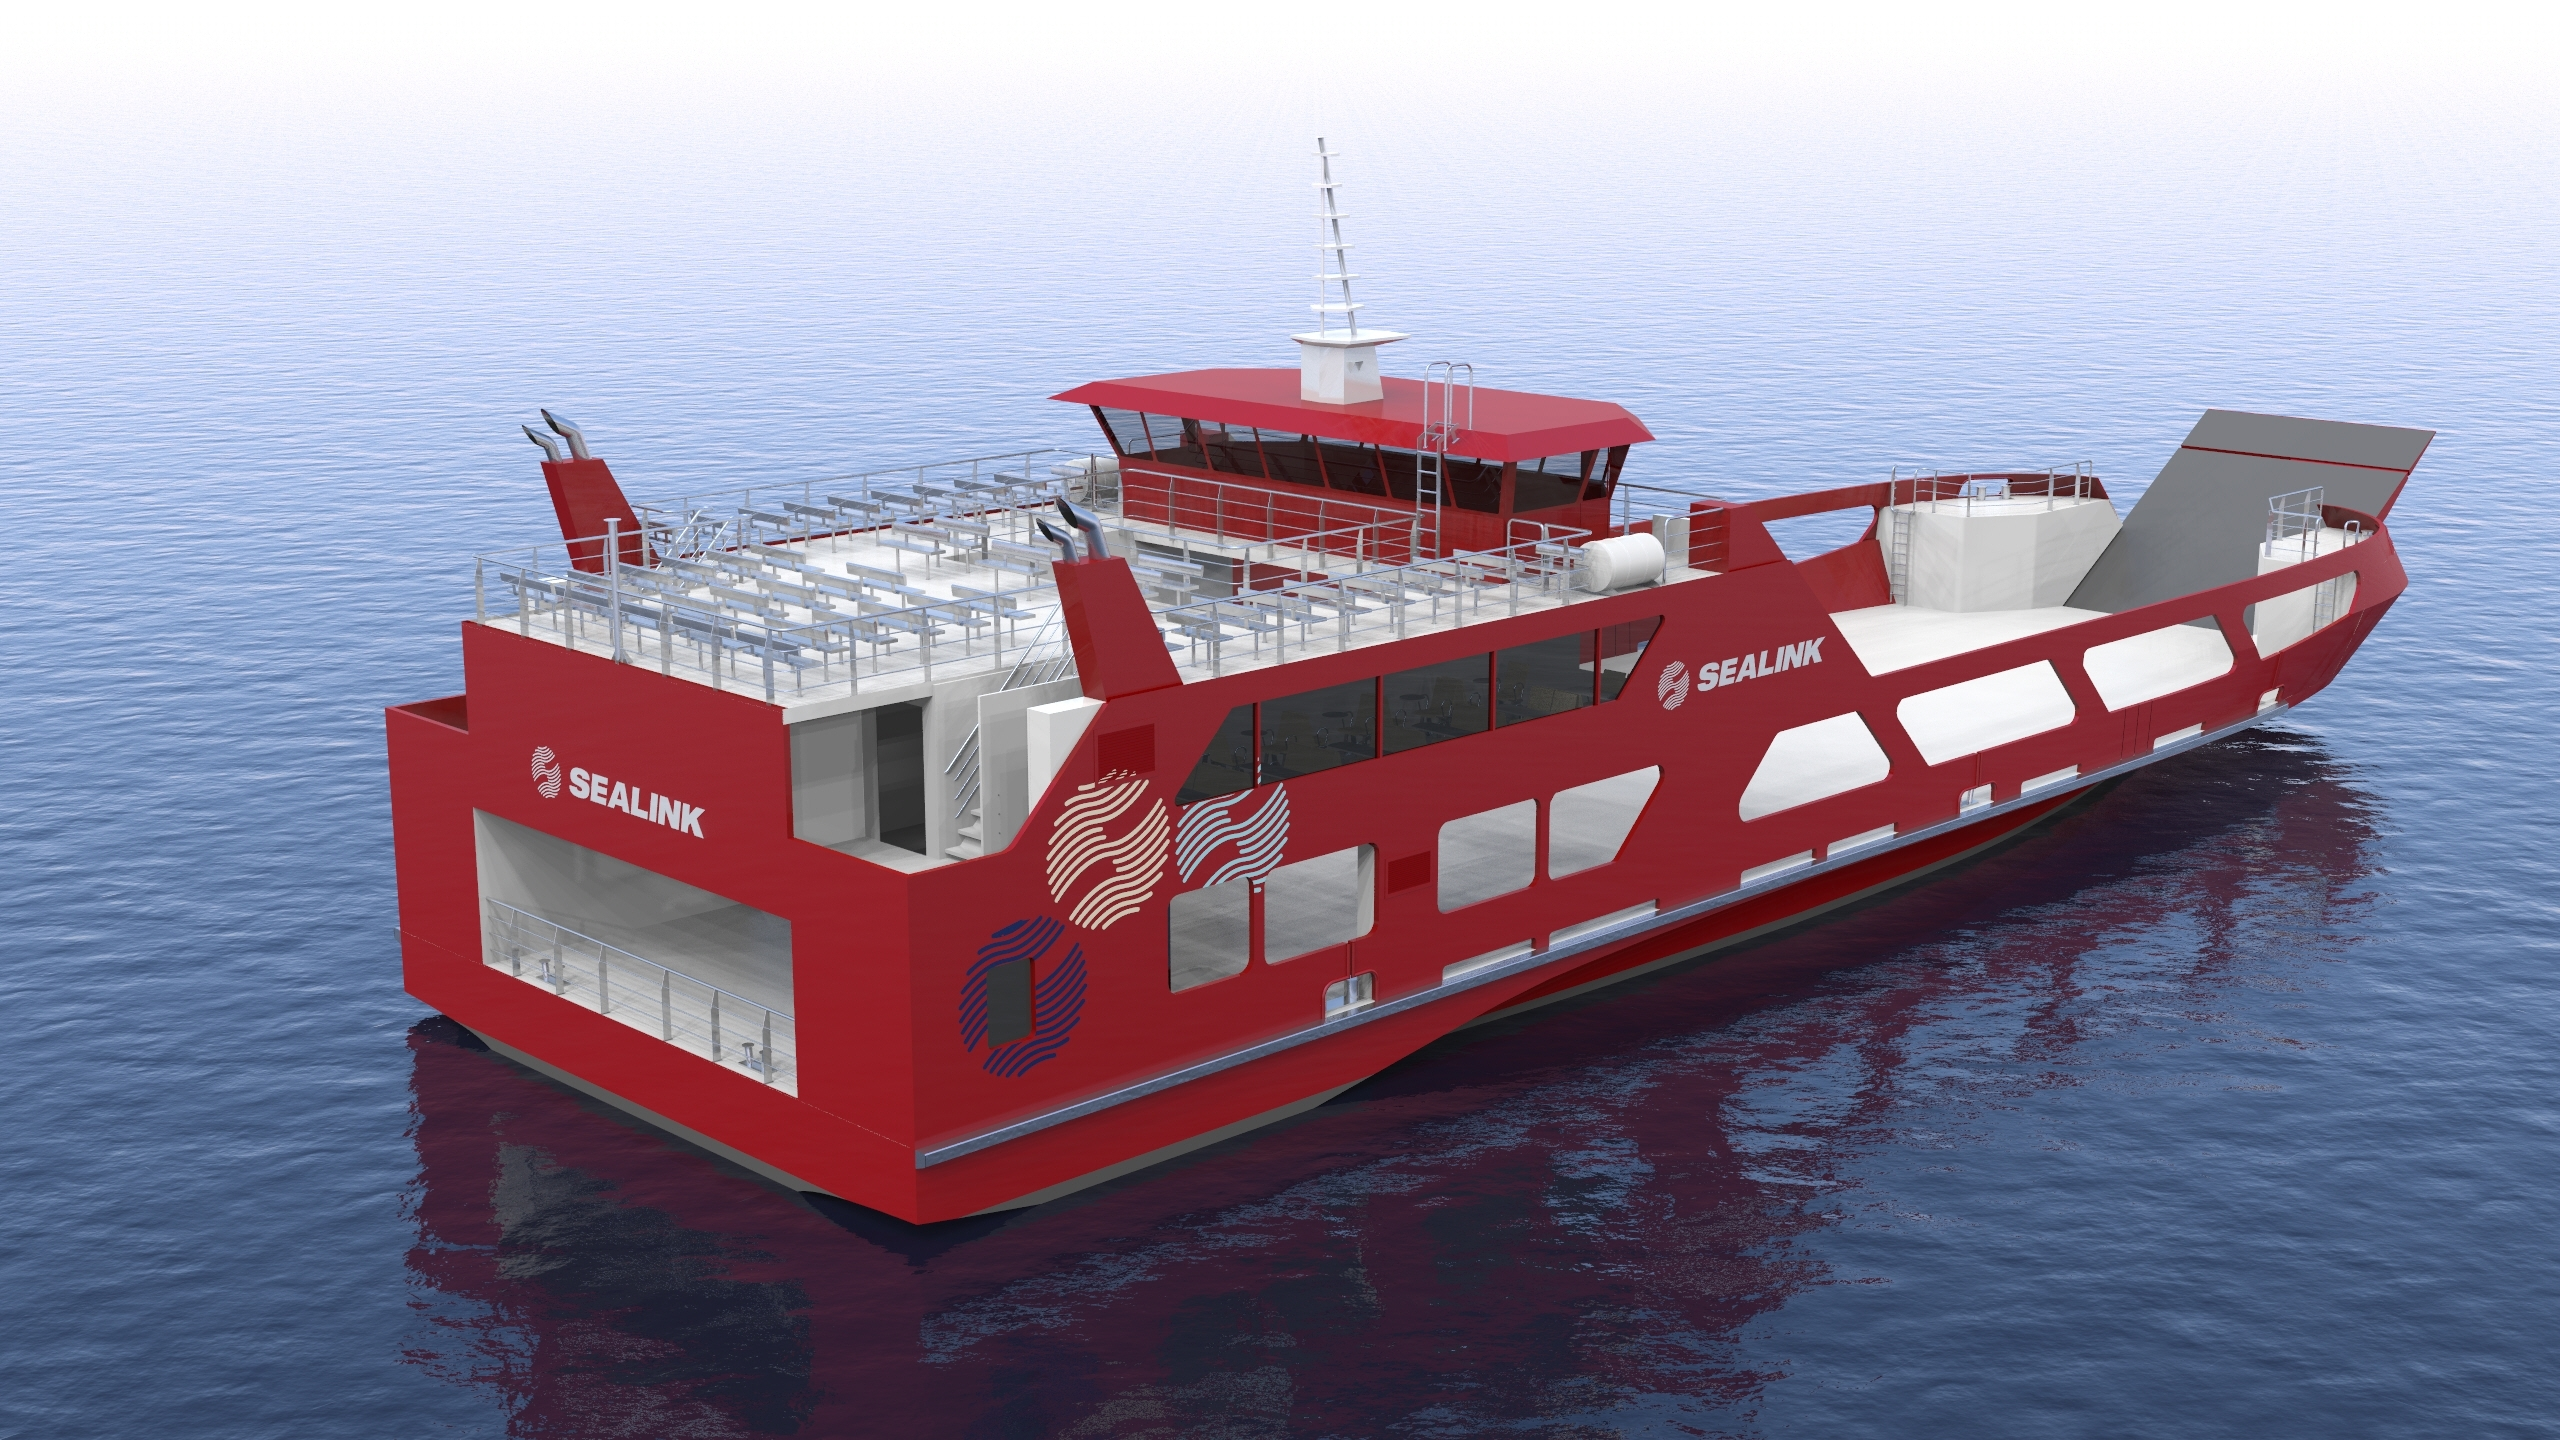 sealink ropax ferry render overall view starboard aft view